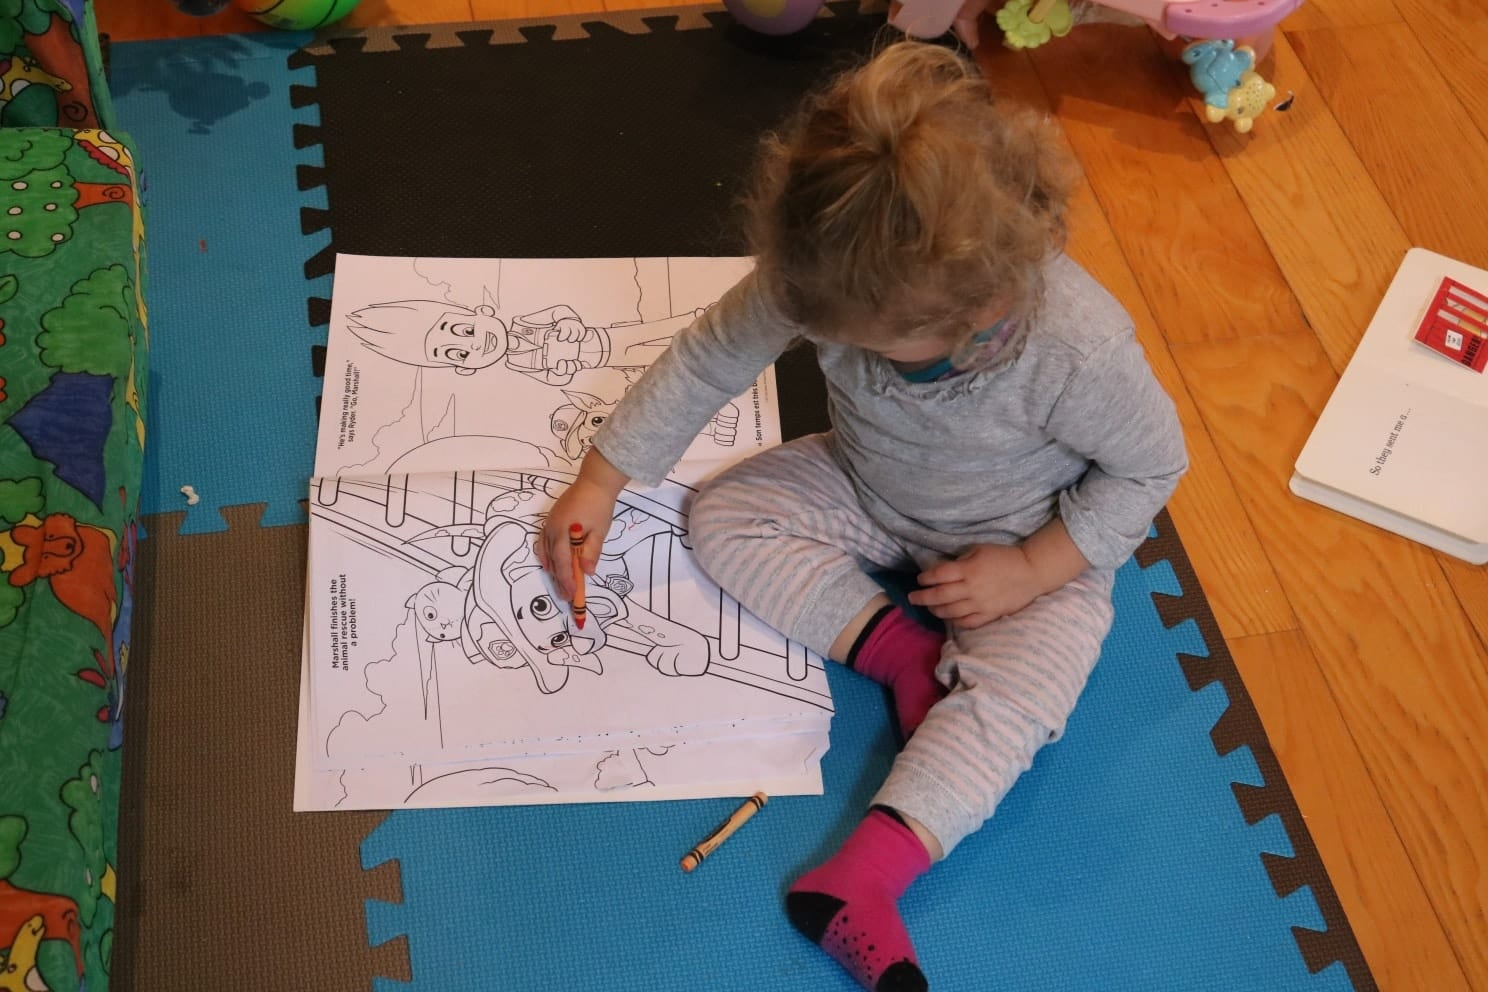 Toddler sitting on the floor with crayons and a paw patrol coloring book